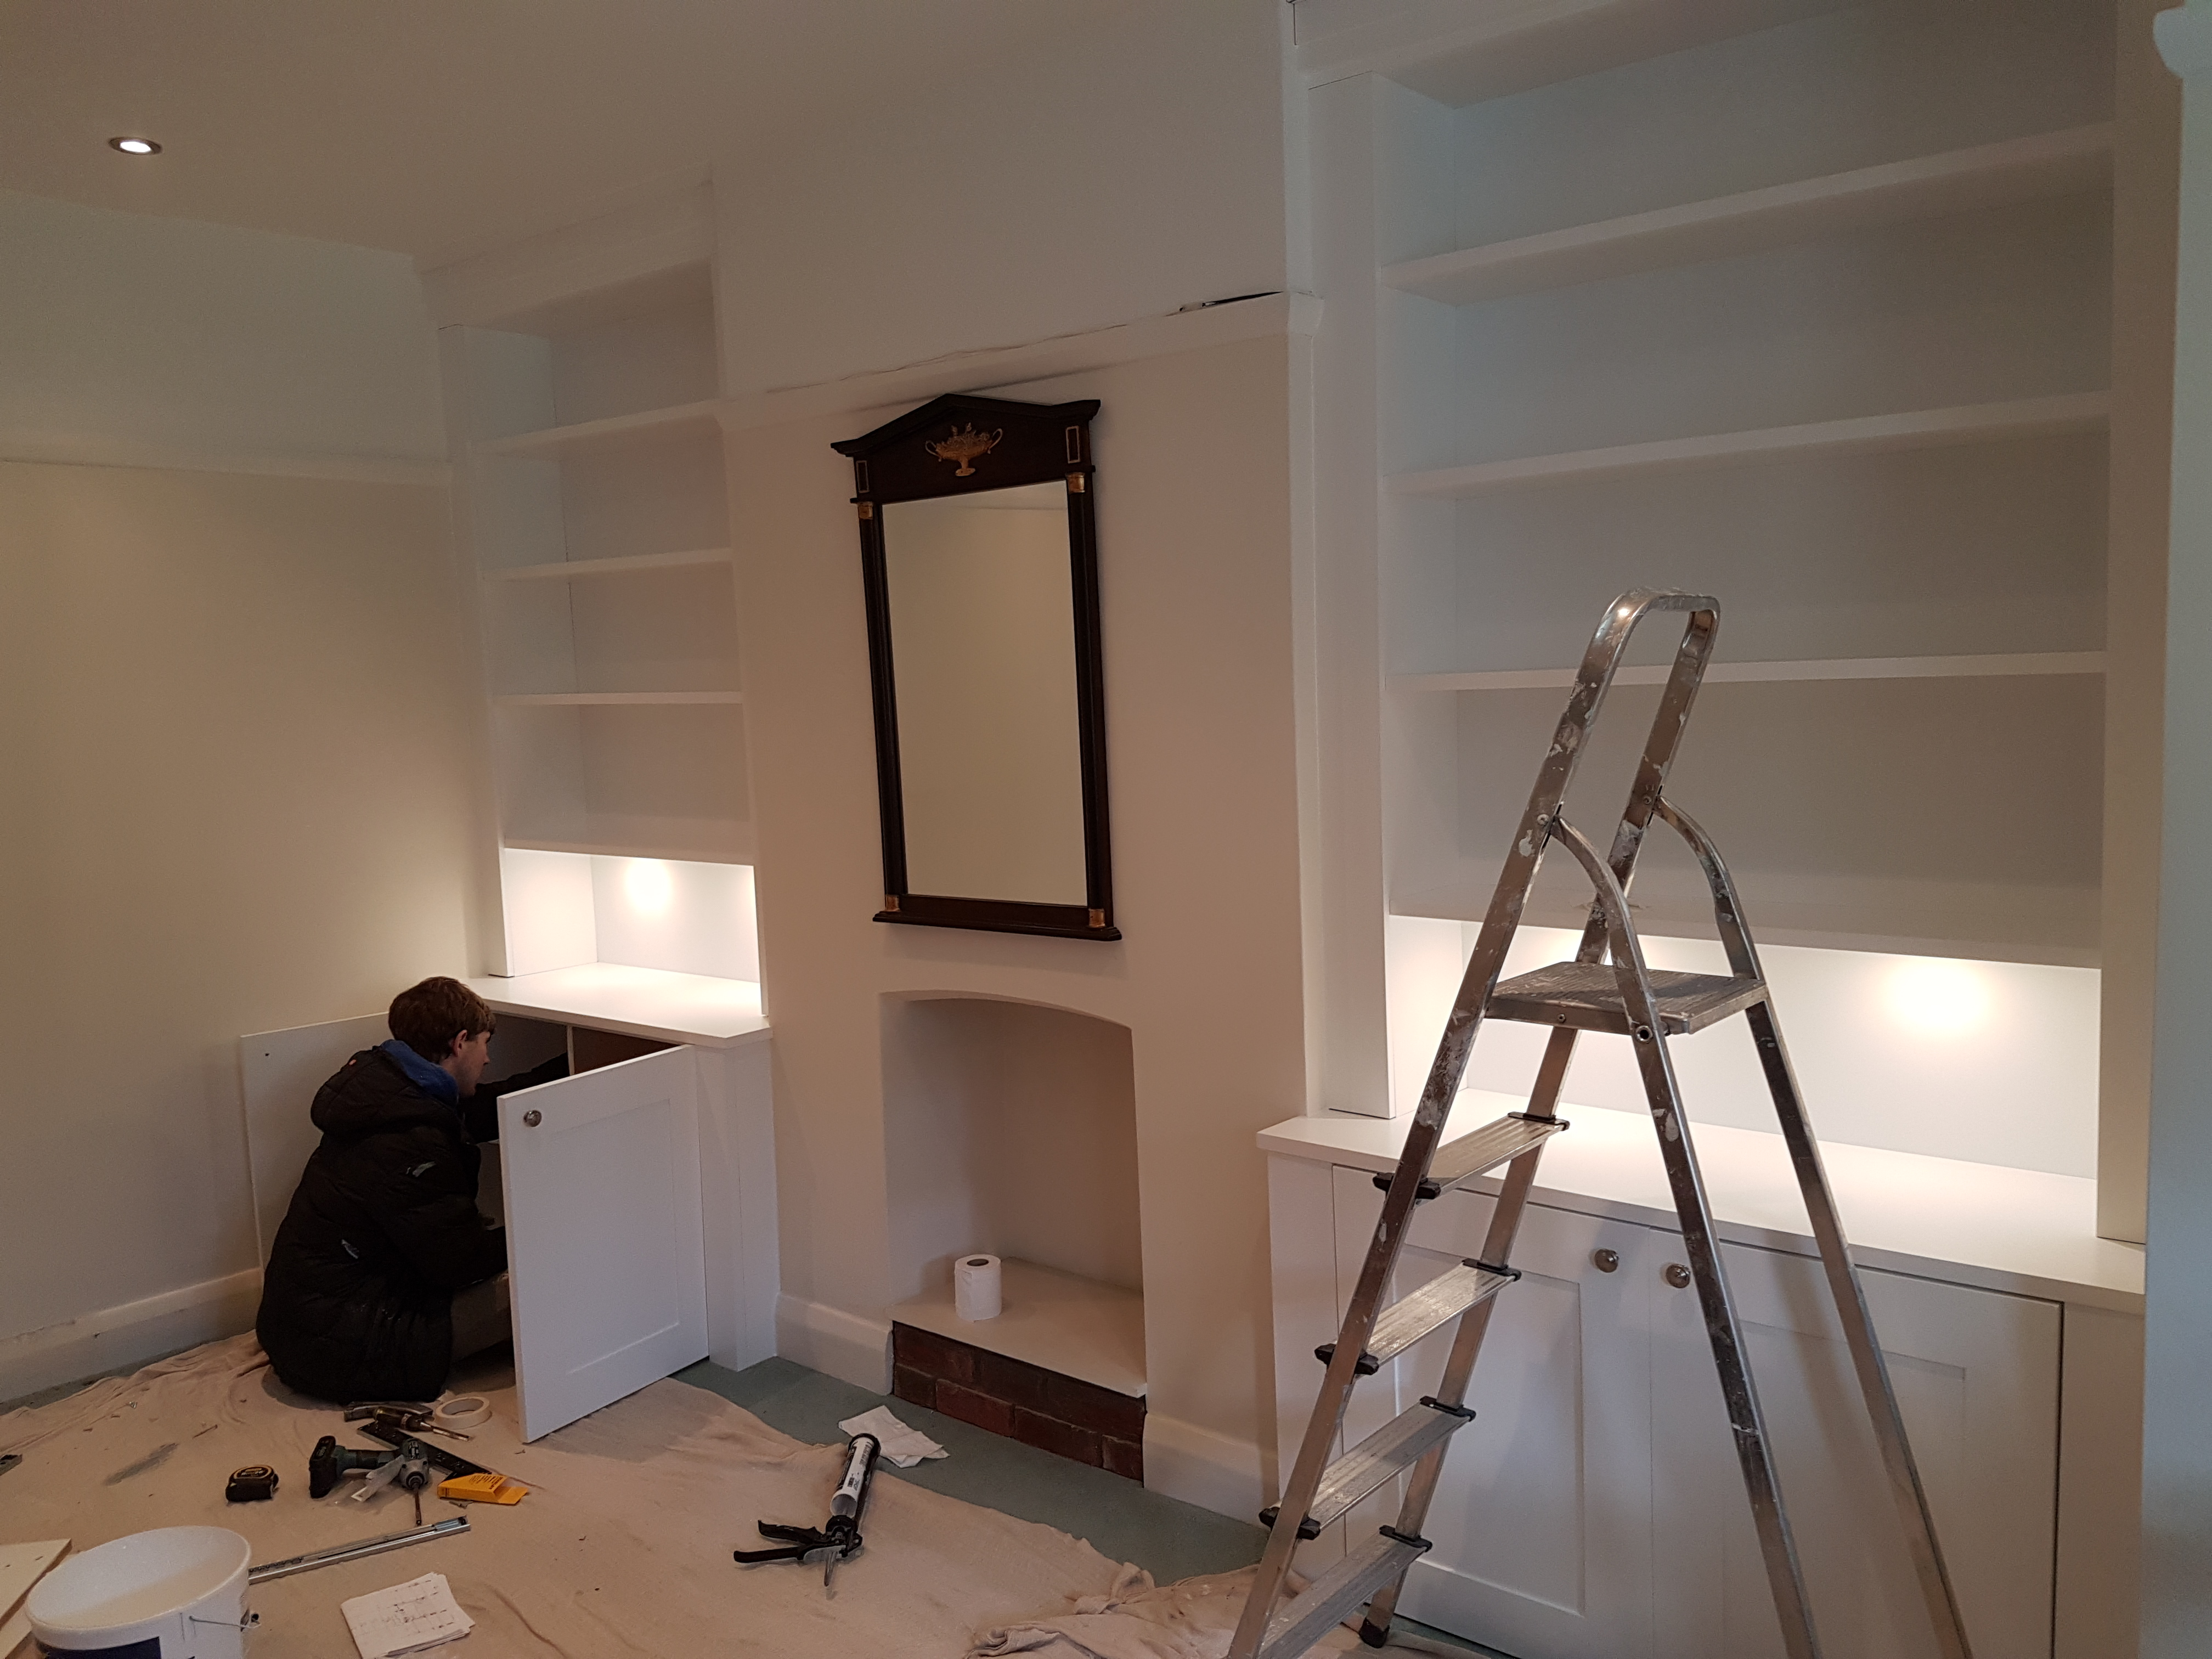 SPRAY FINISHED ALCOVE CABINETS 4